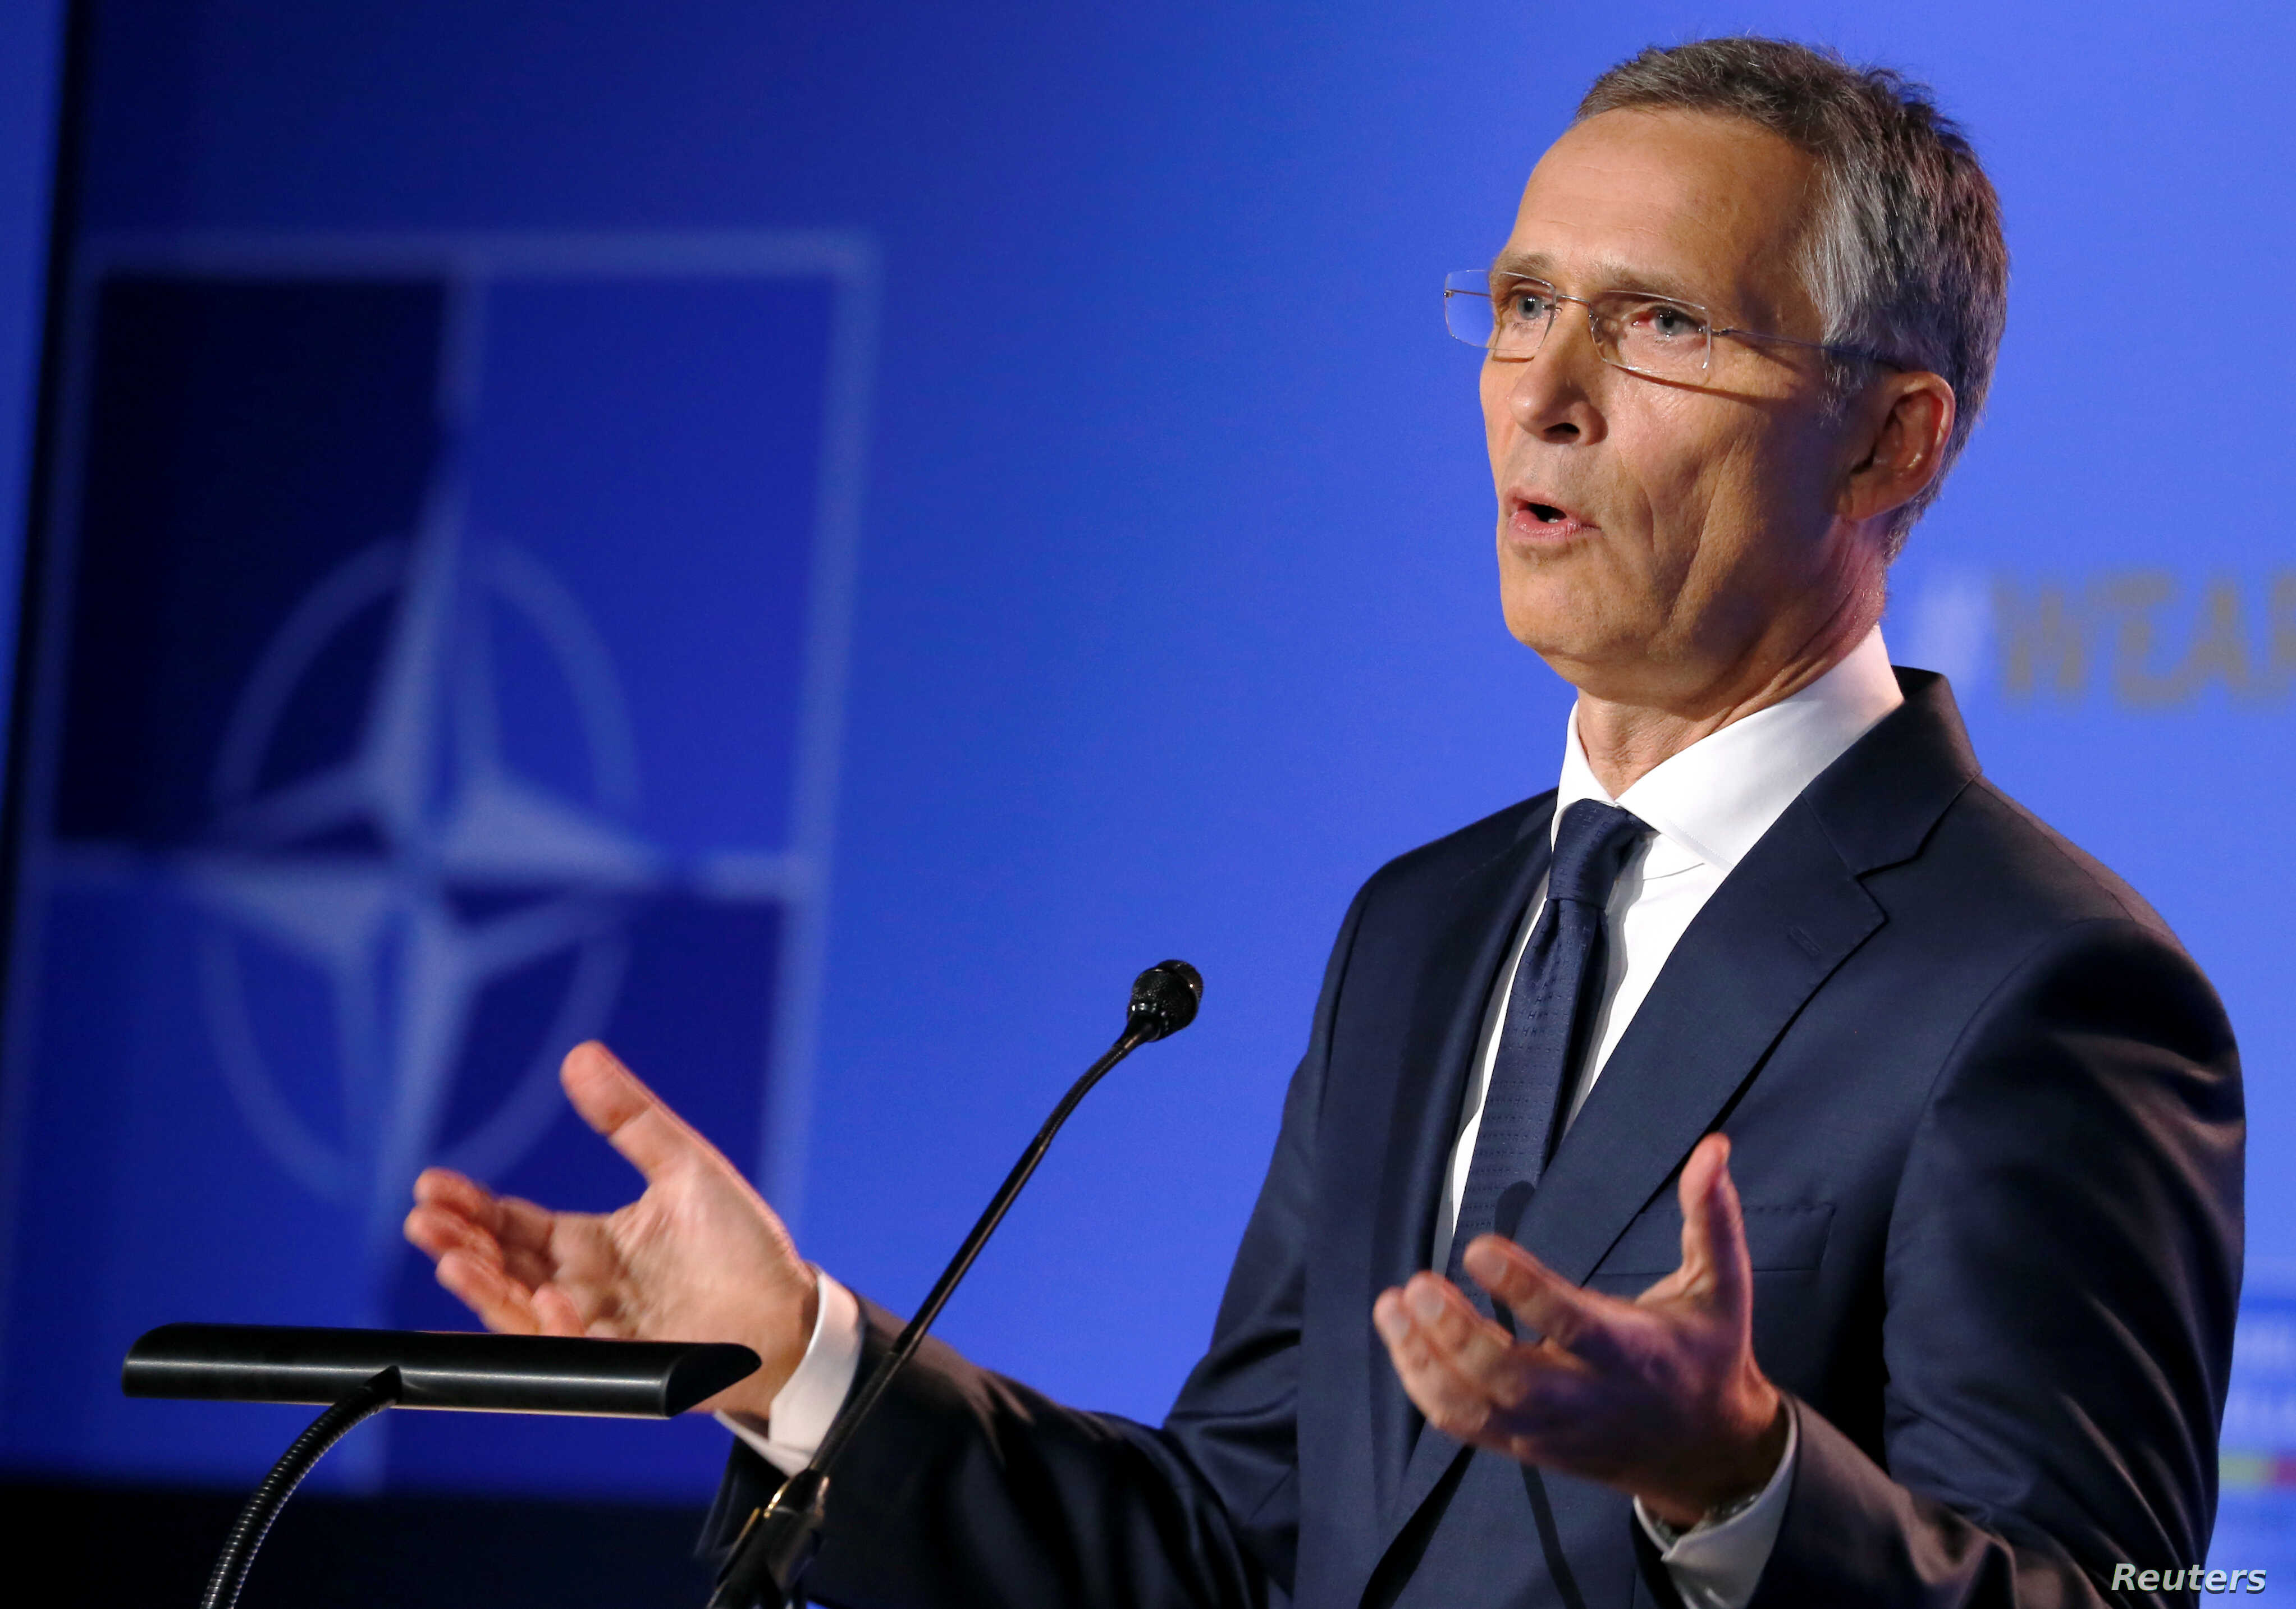 NATO Secretary-General Jens Stoltenberg gestures as he holds a news conference during the NATO summit in Brussels, Belgium, July 11, 2018.